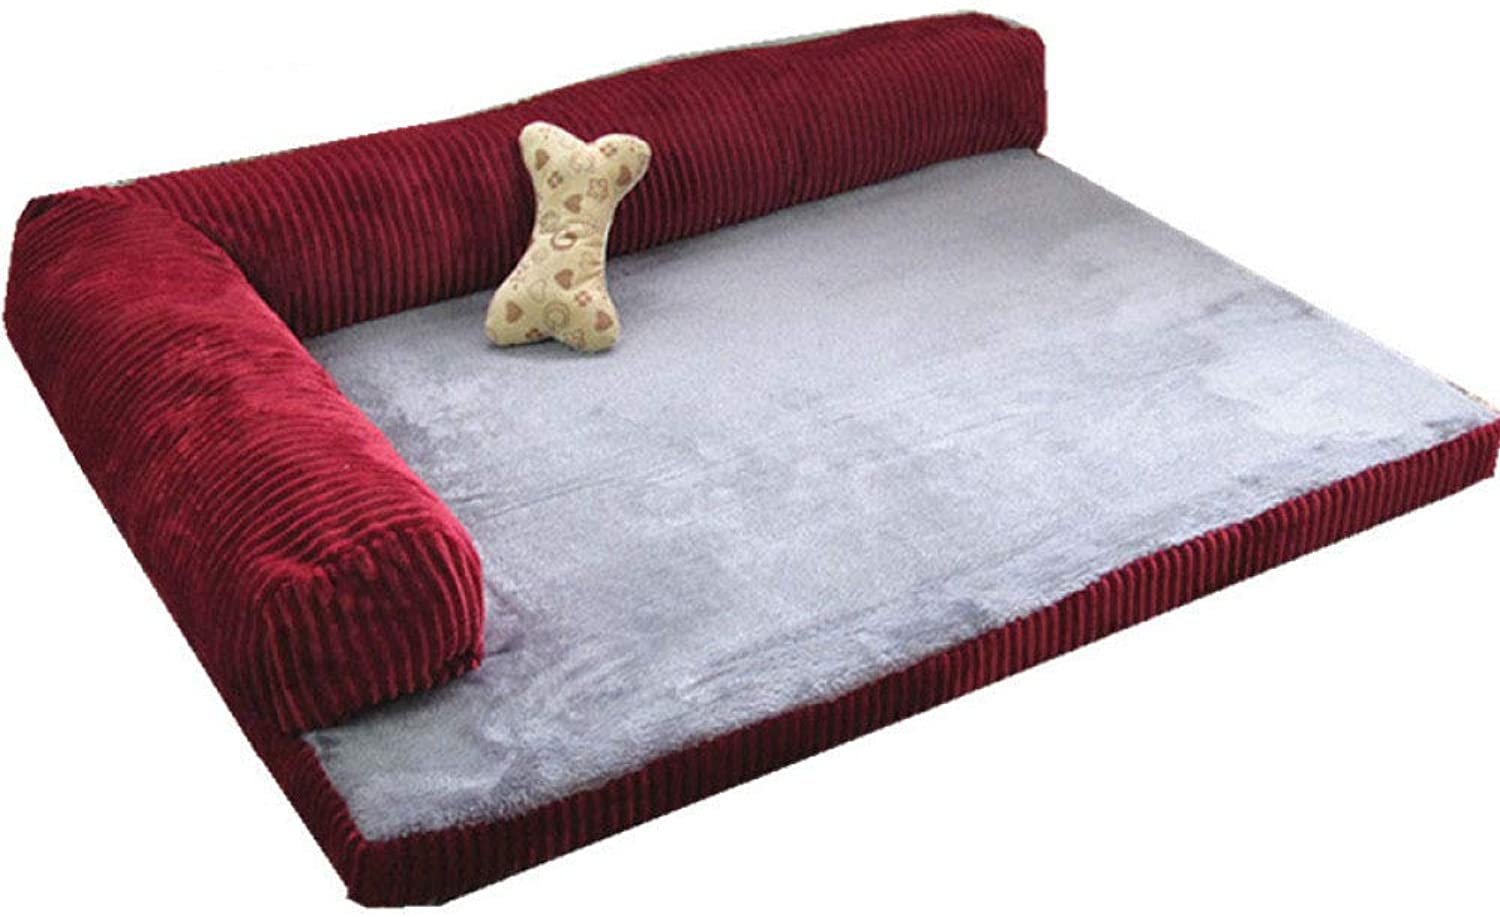 JXJL Pet Dog Bed   Orthopedic Ultra Plush SofaStyle Couch Pet Bed For Dogs Cats, Espresso, Large,RedS